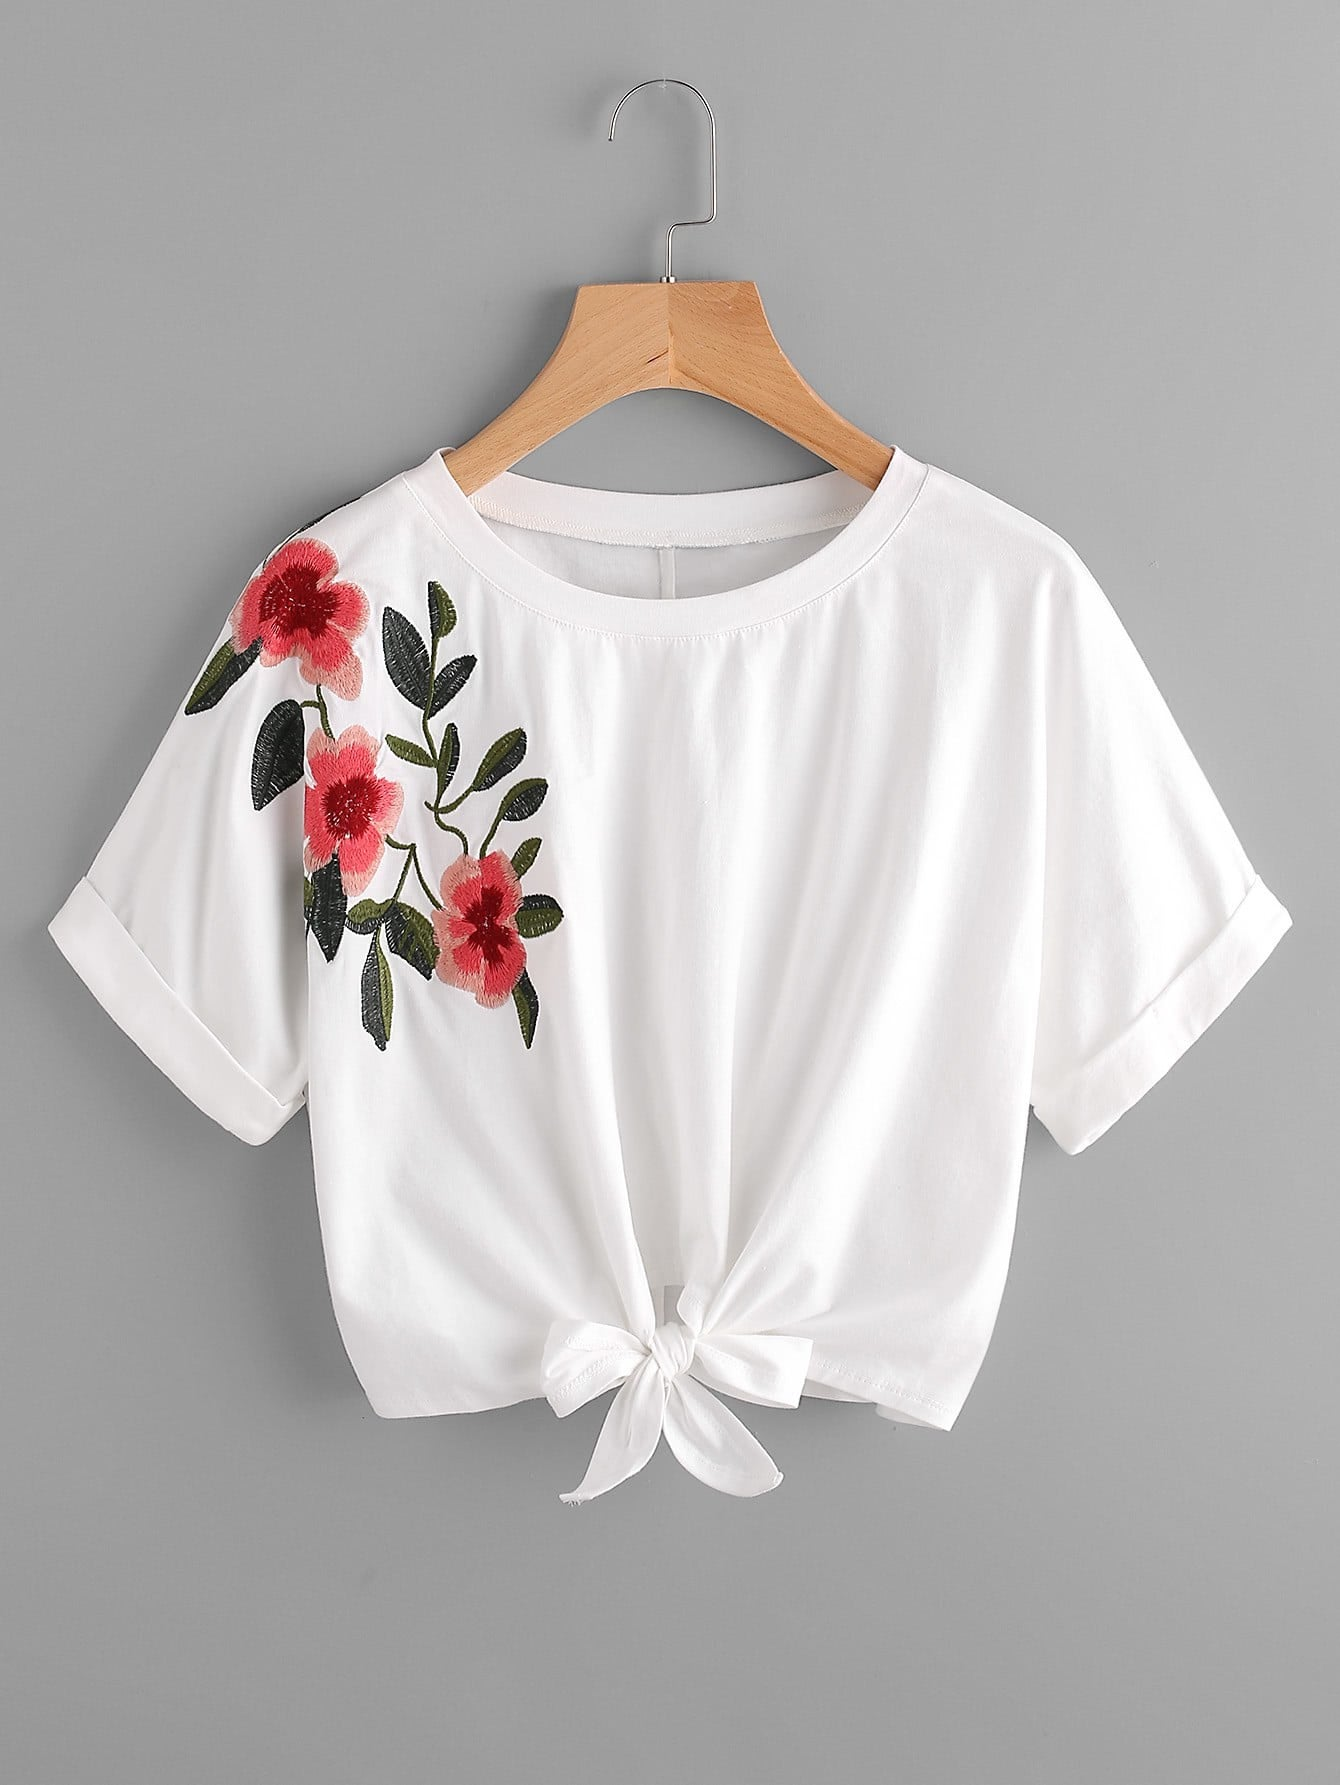 Knot Front Cuffed Embroidered Tee knot front tee